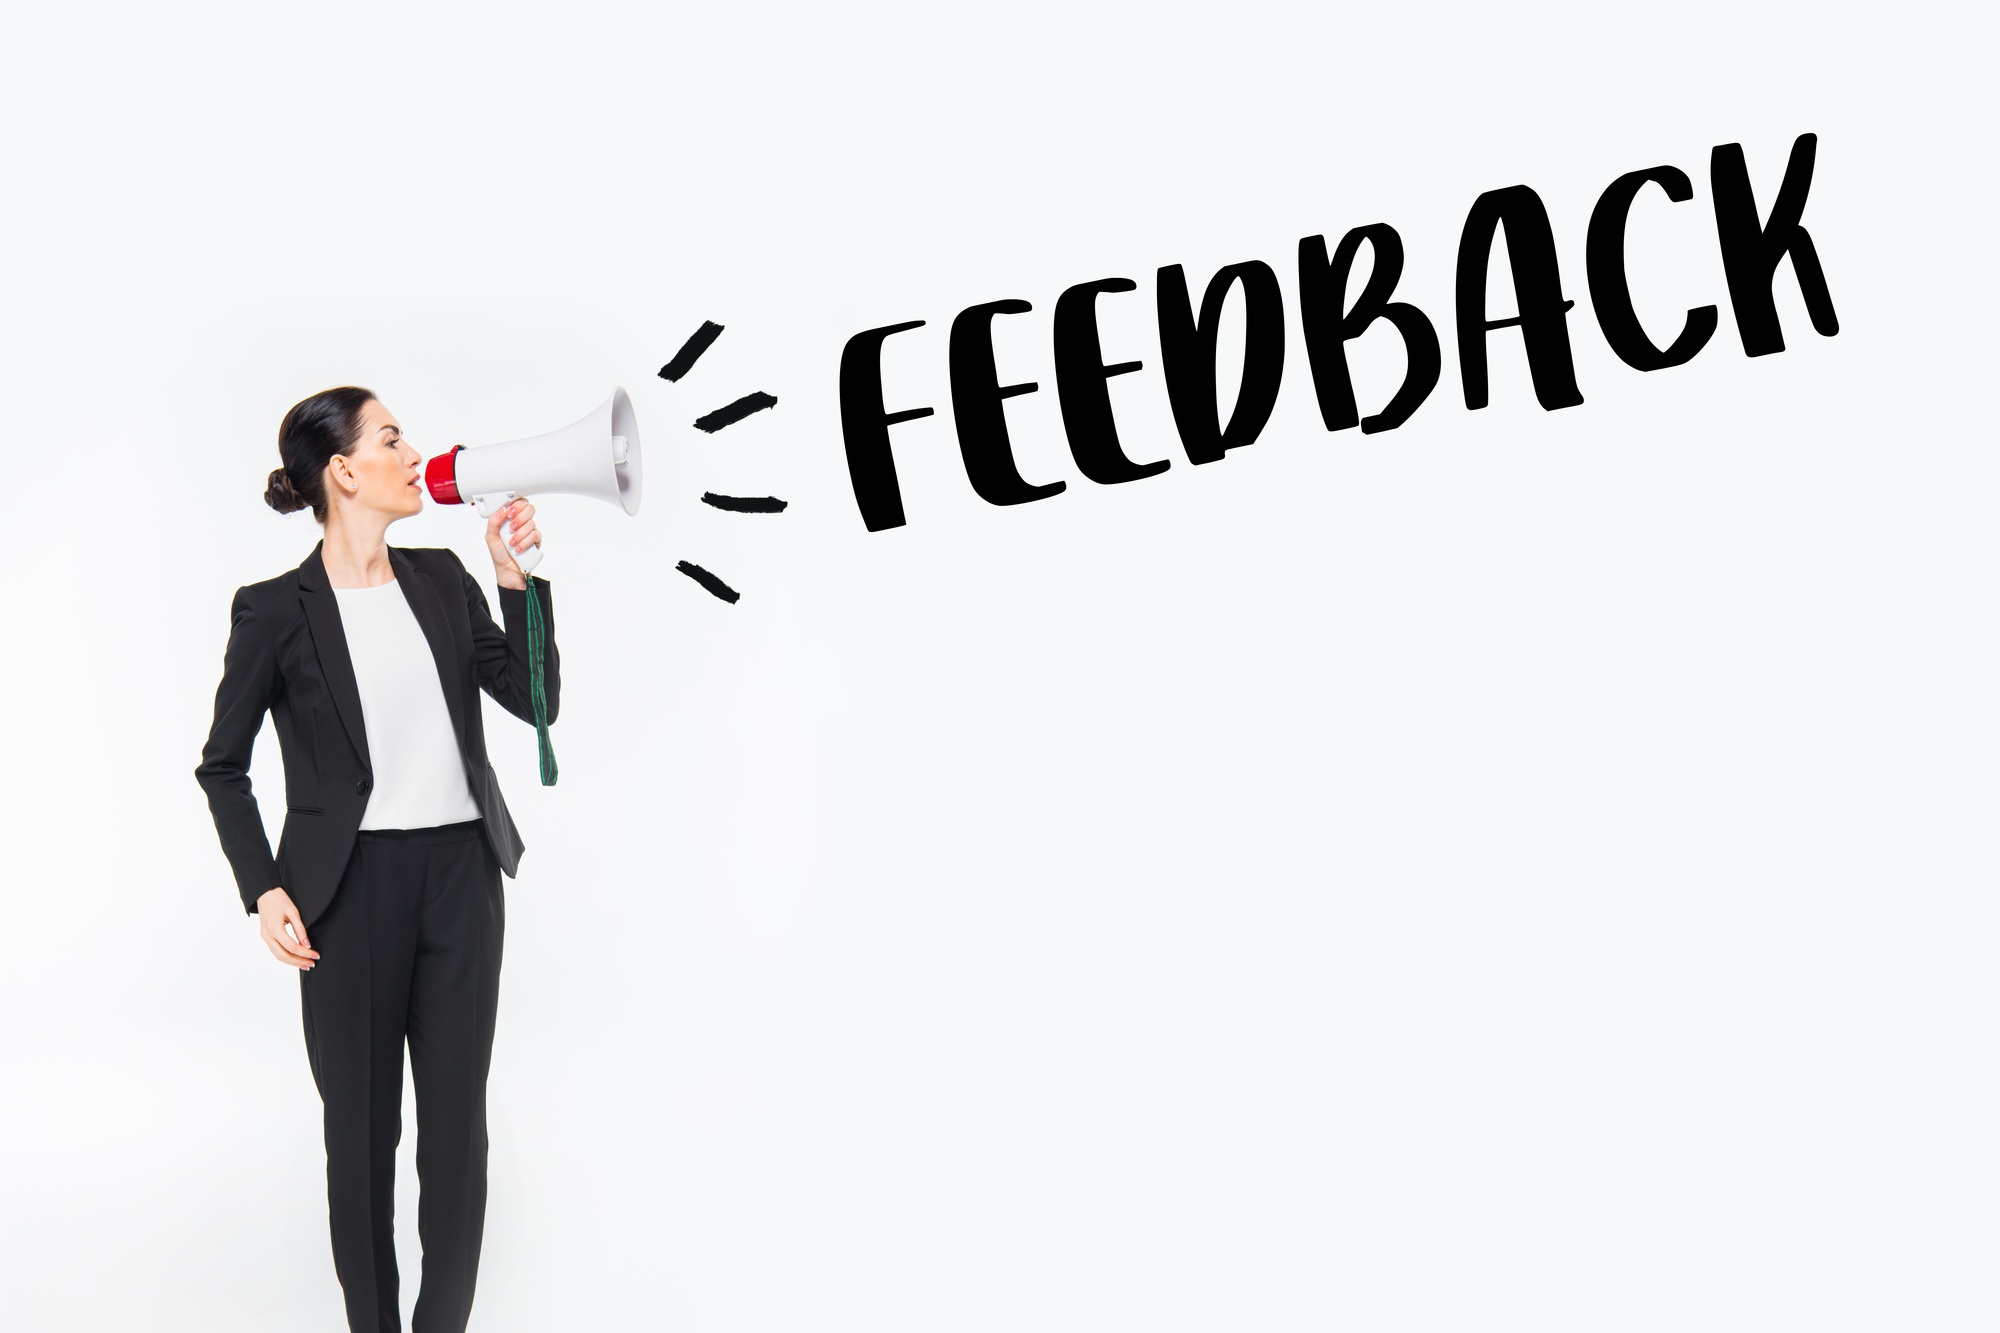 Your Feedback! - Click here to do a short feedback form